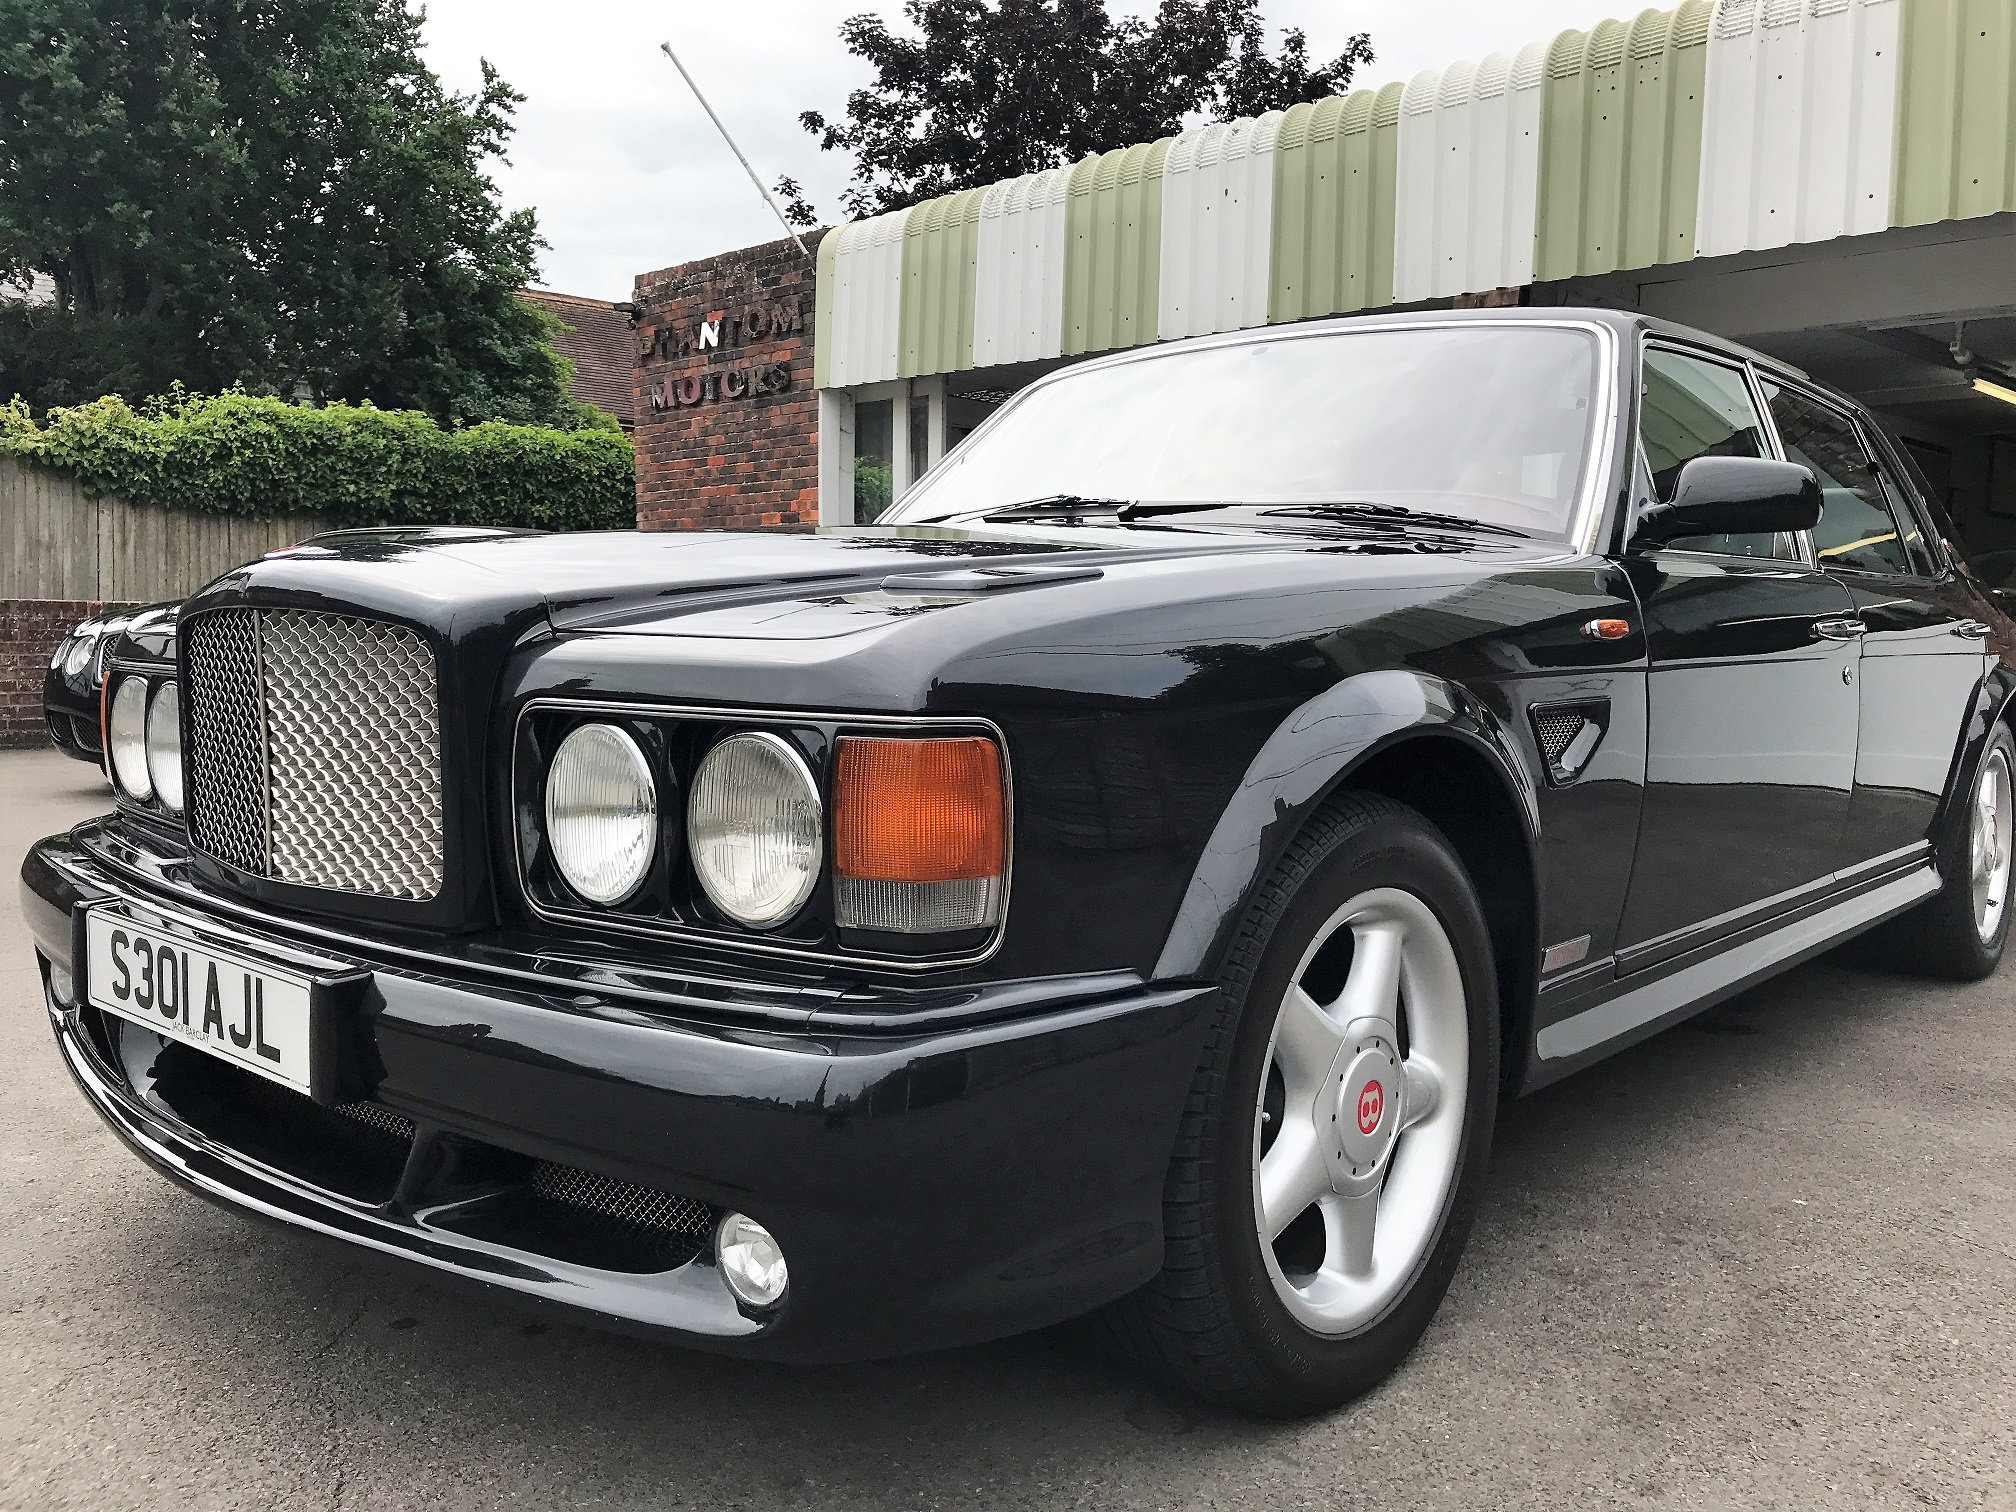 Bentley turbo rt mulliner phantom motor cars ltd for Bentley motors limited dream cars